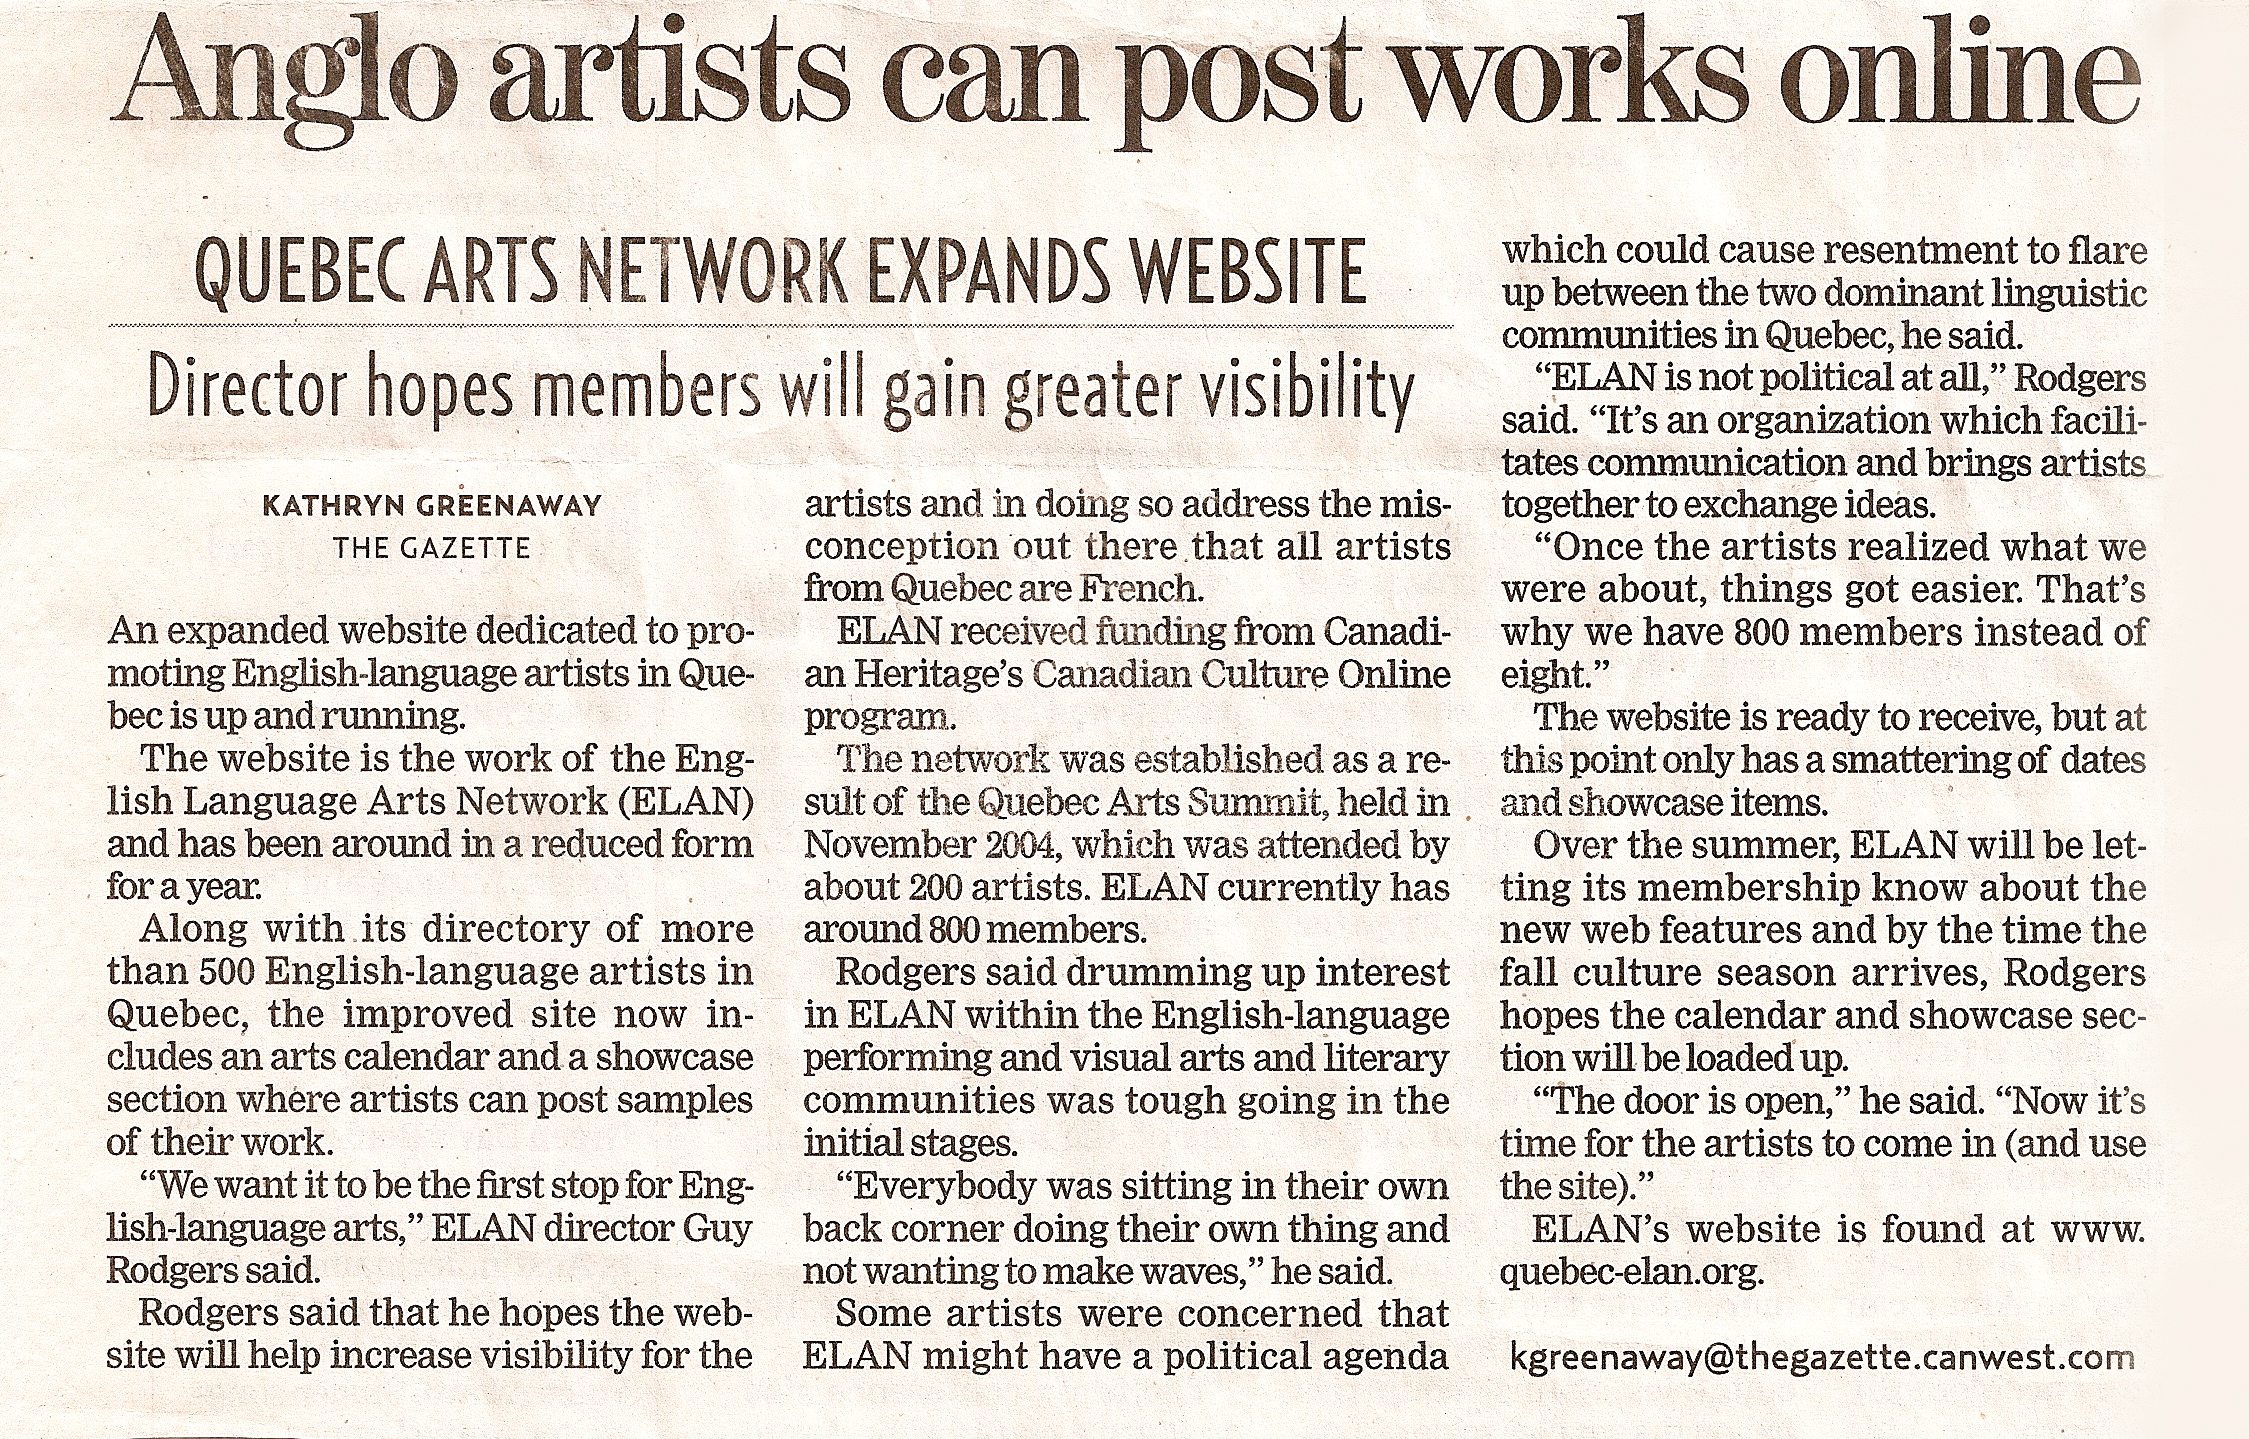 Anglo Artists Can Post Works Online- The Gazette (2006)